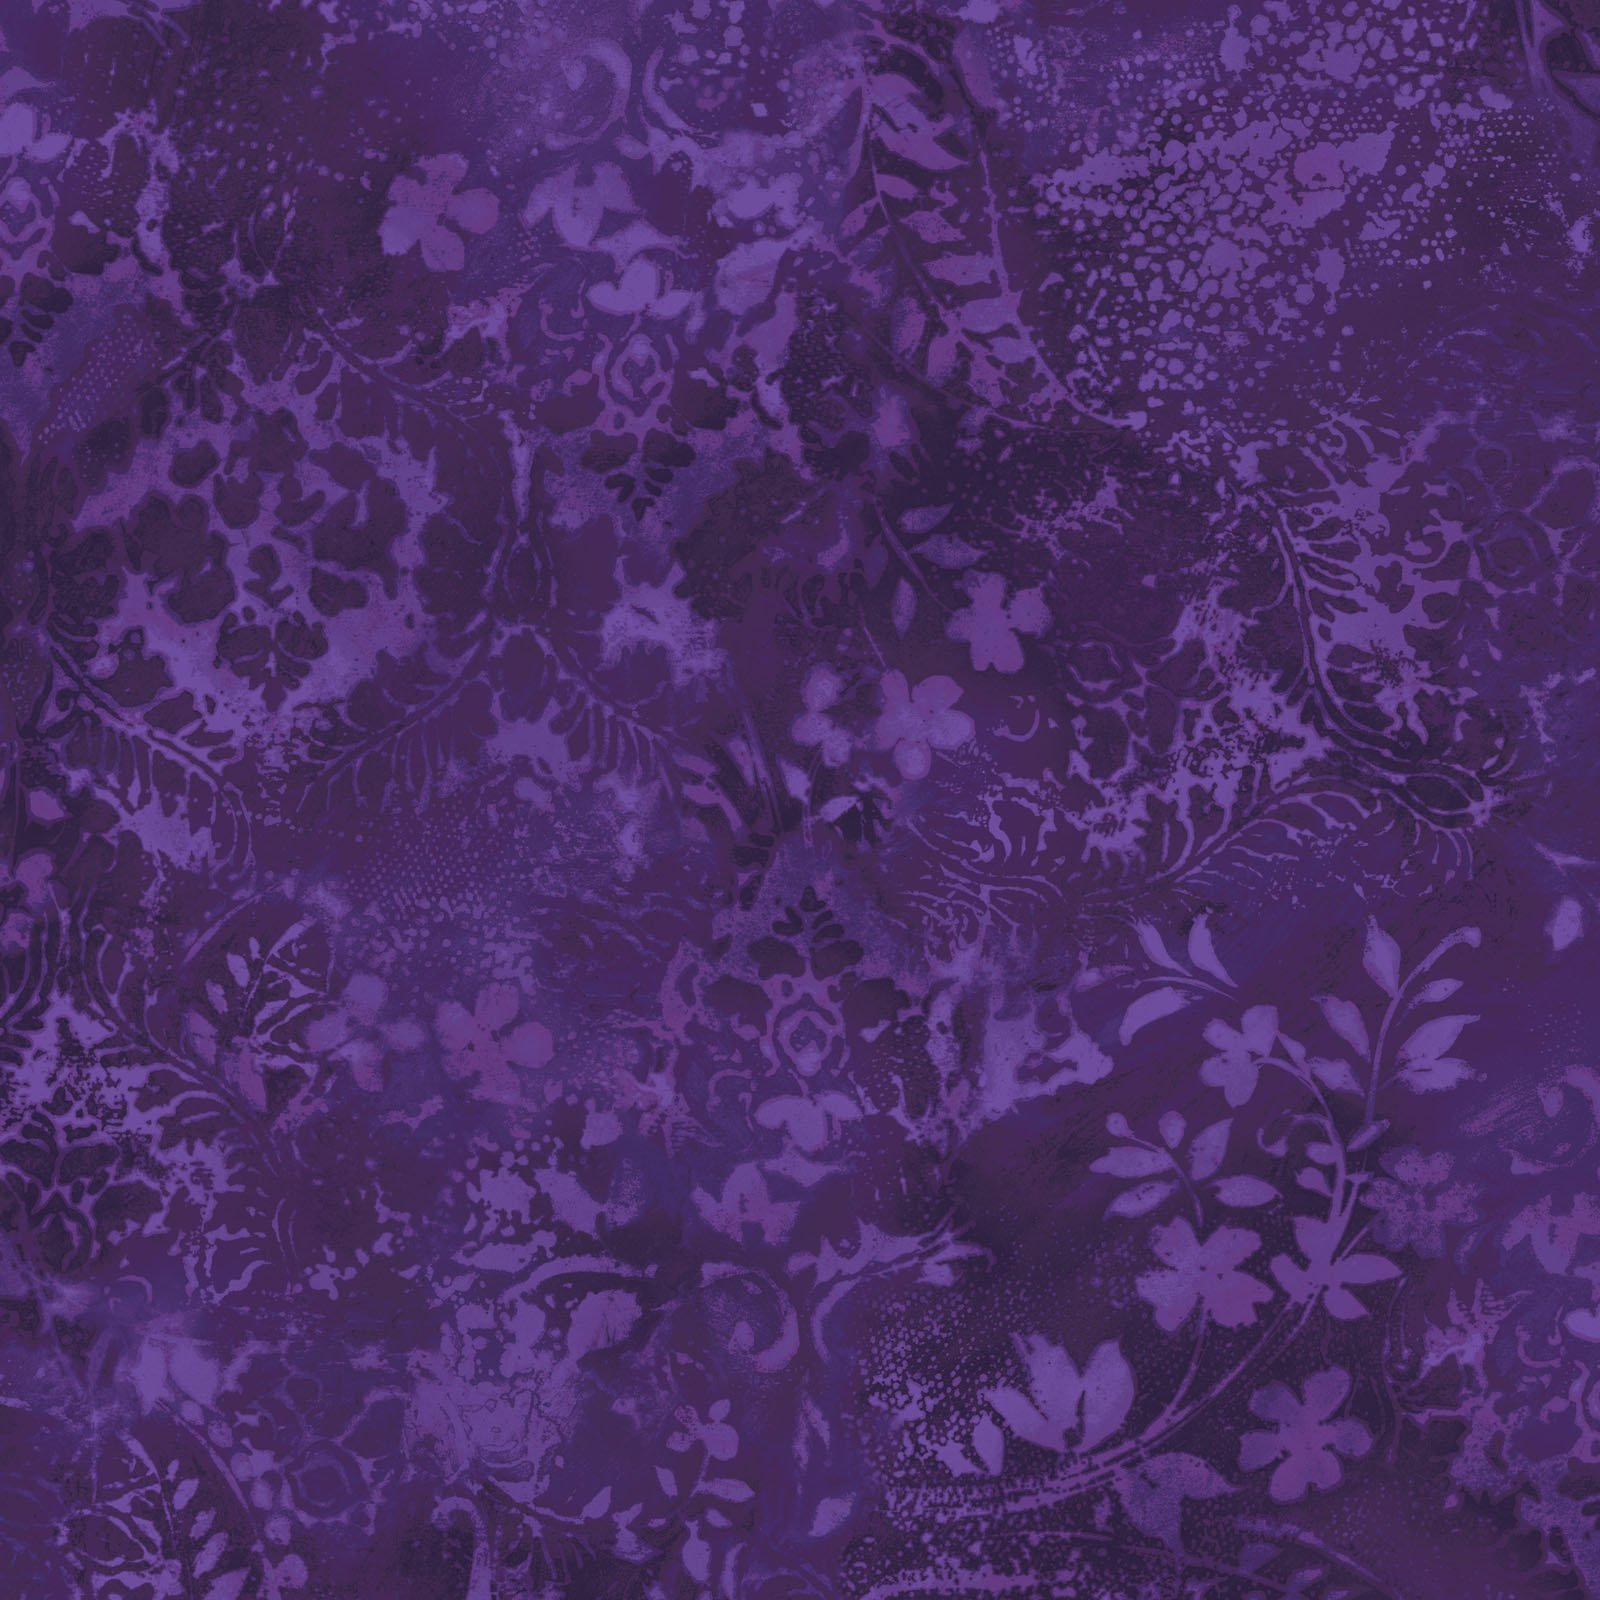 EESC-QBD105 V2 - BEAUTIFUL BACKING 108 VINTAGE DAMASK BY MAYWOOD PURPLE - ARRIVING IN MAY 2021